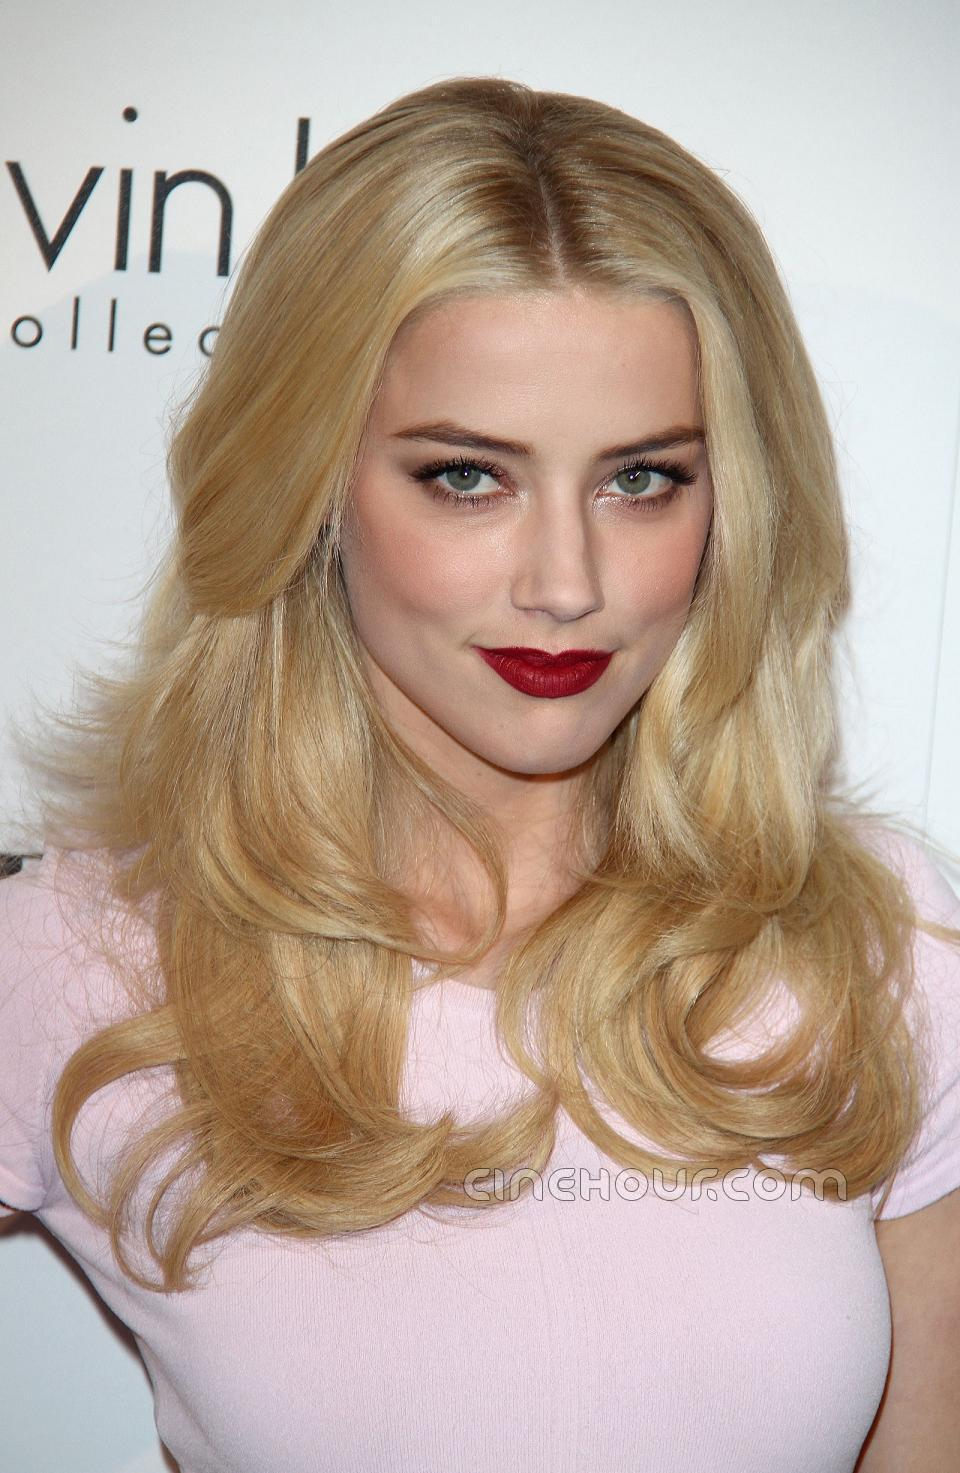 Amber Heard Is The Most Scientifically Beautiful Woman: Black Women Center: Amber Heard At ELLE 18th Annual Women